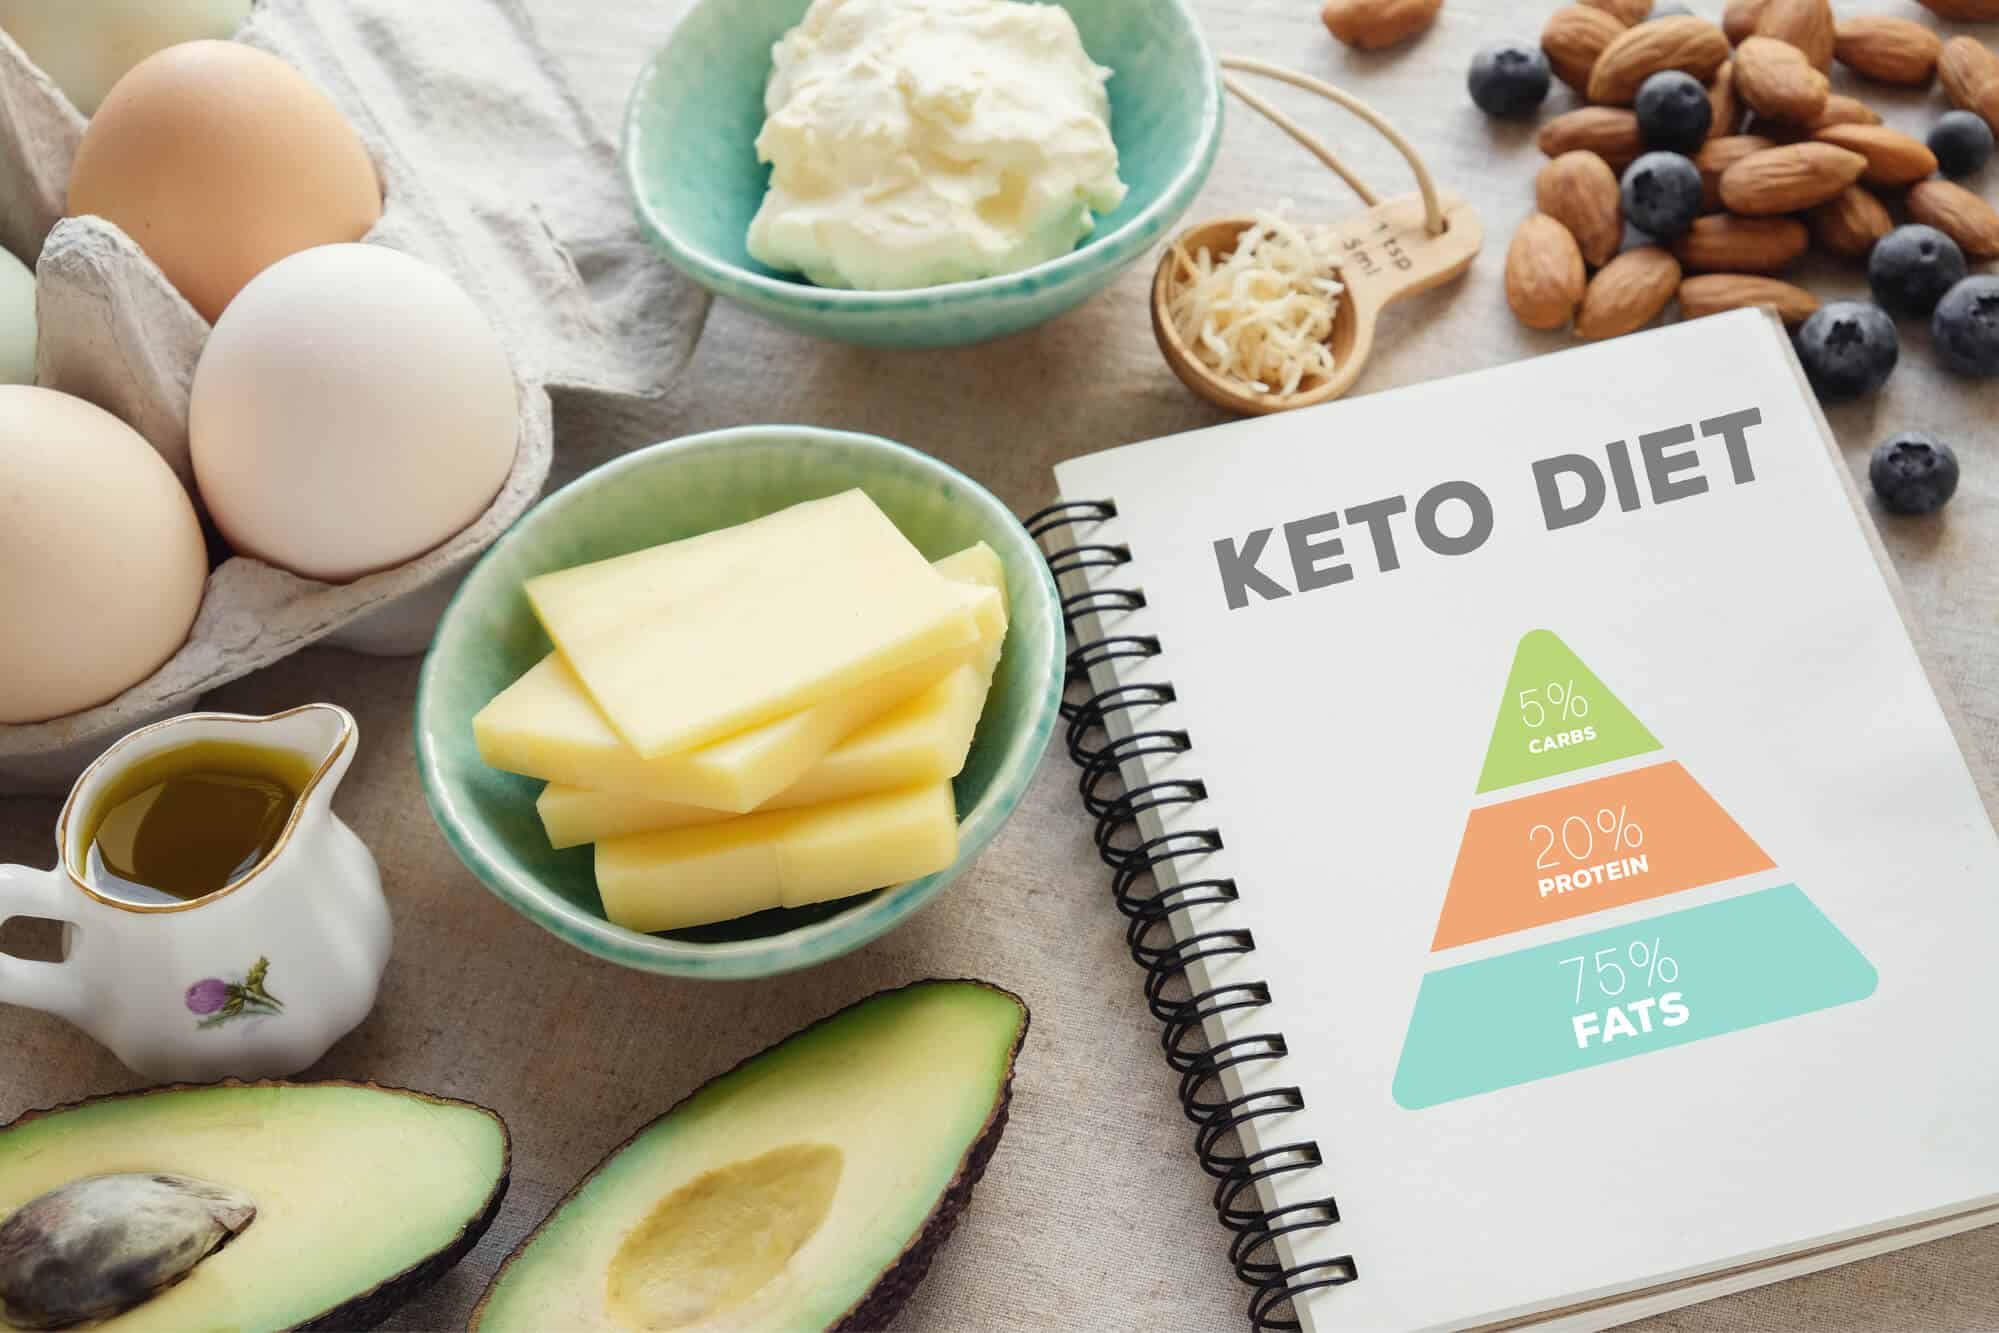 snack wisely by munching on low carb keto snacks